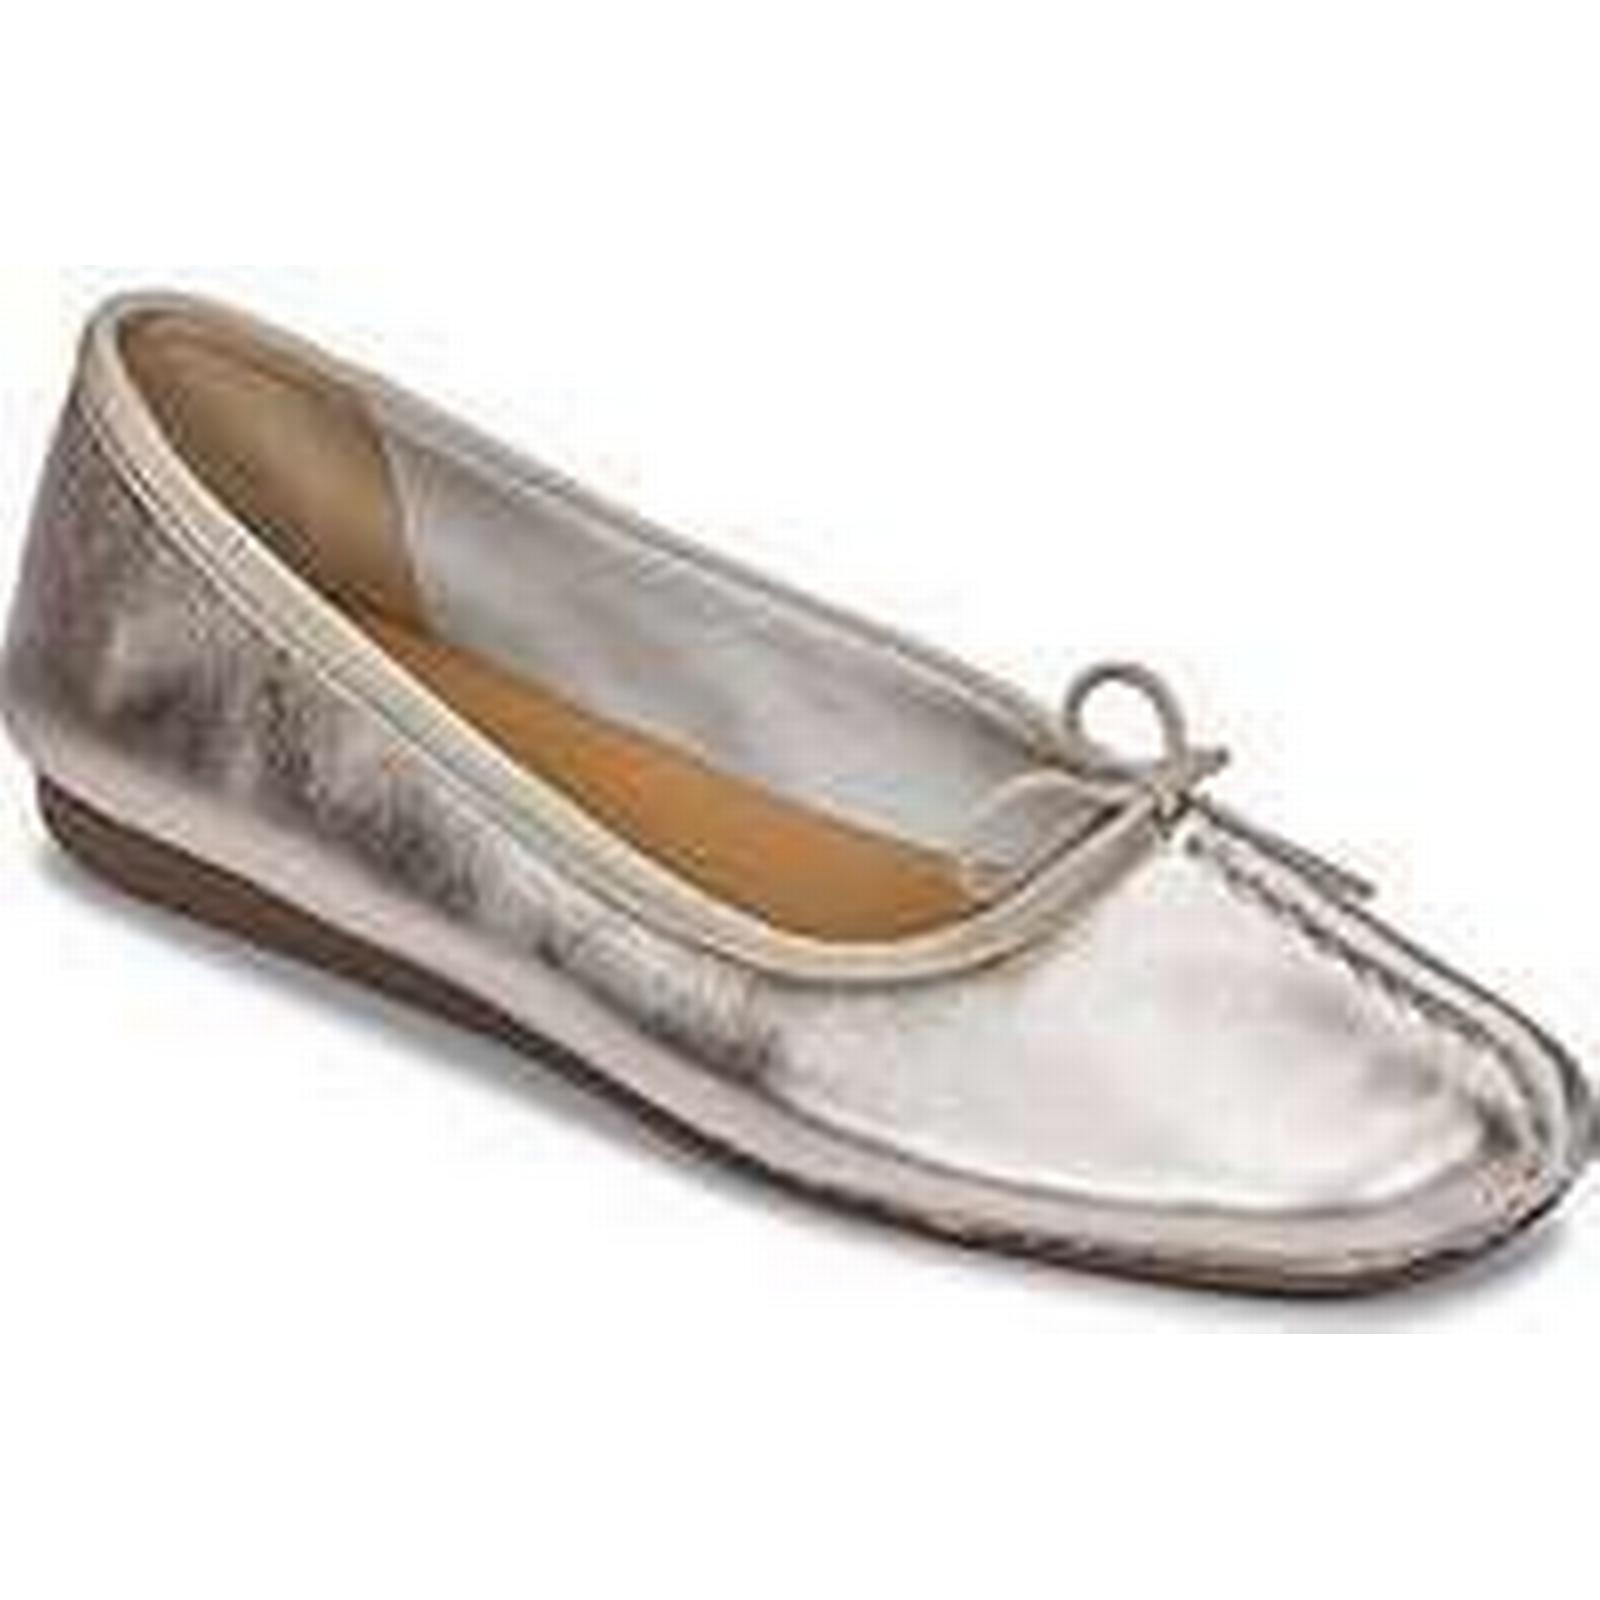 Spartoo.co.uk Clarks FRECKLE / ICE women's Shoes (Pumps / FRECKLE Ballerinas) in Silver 3a55a7